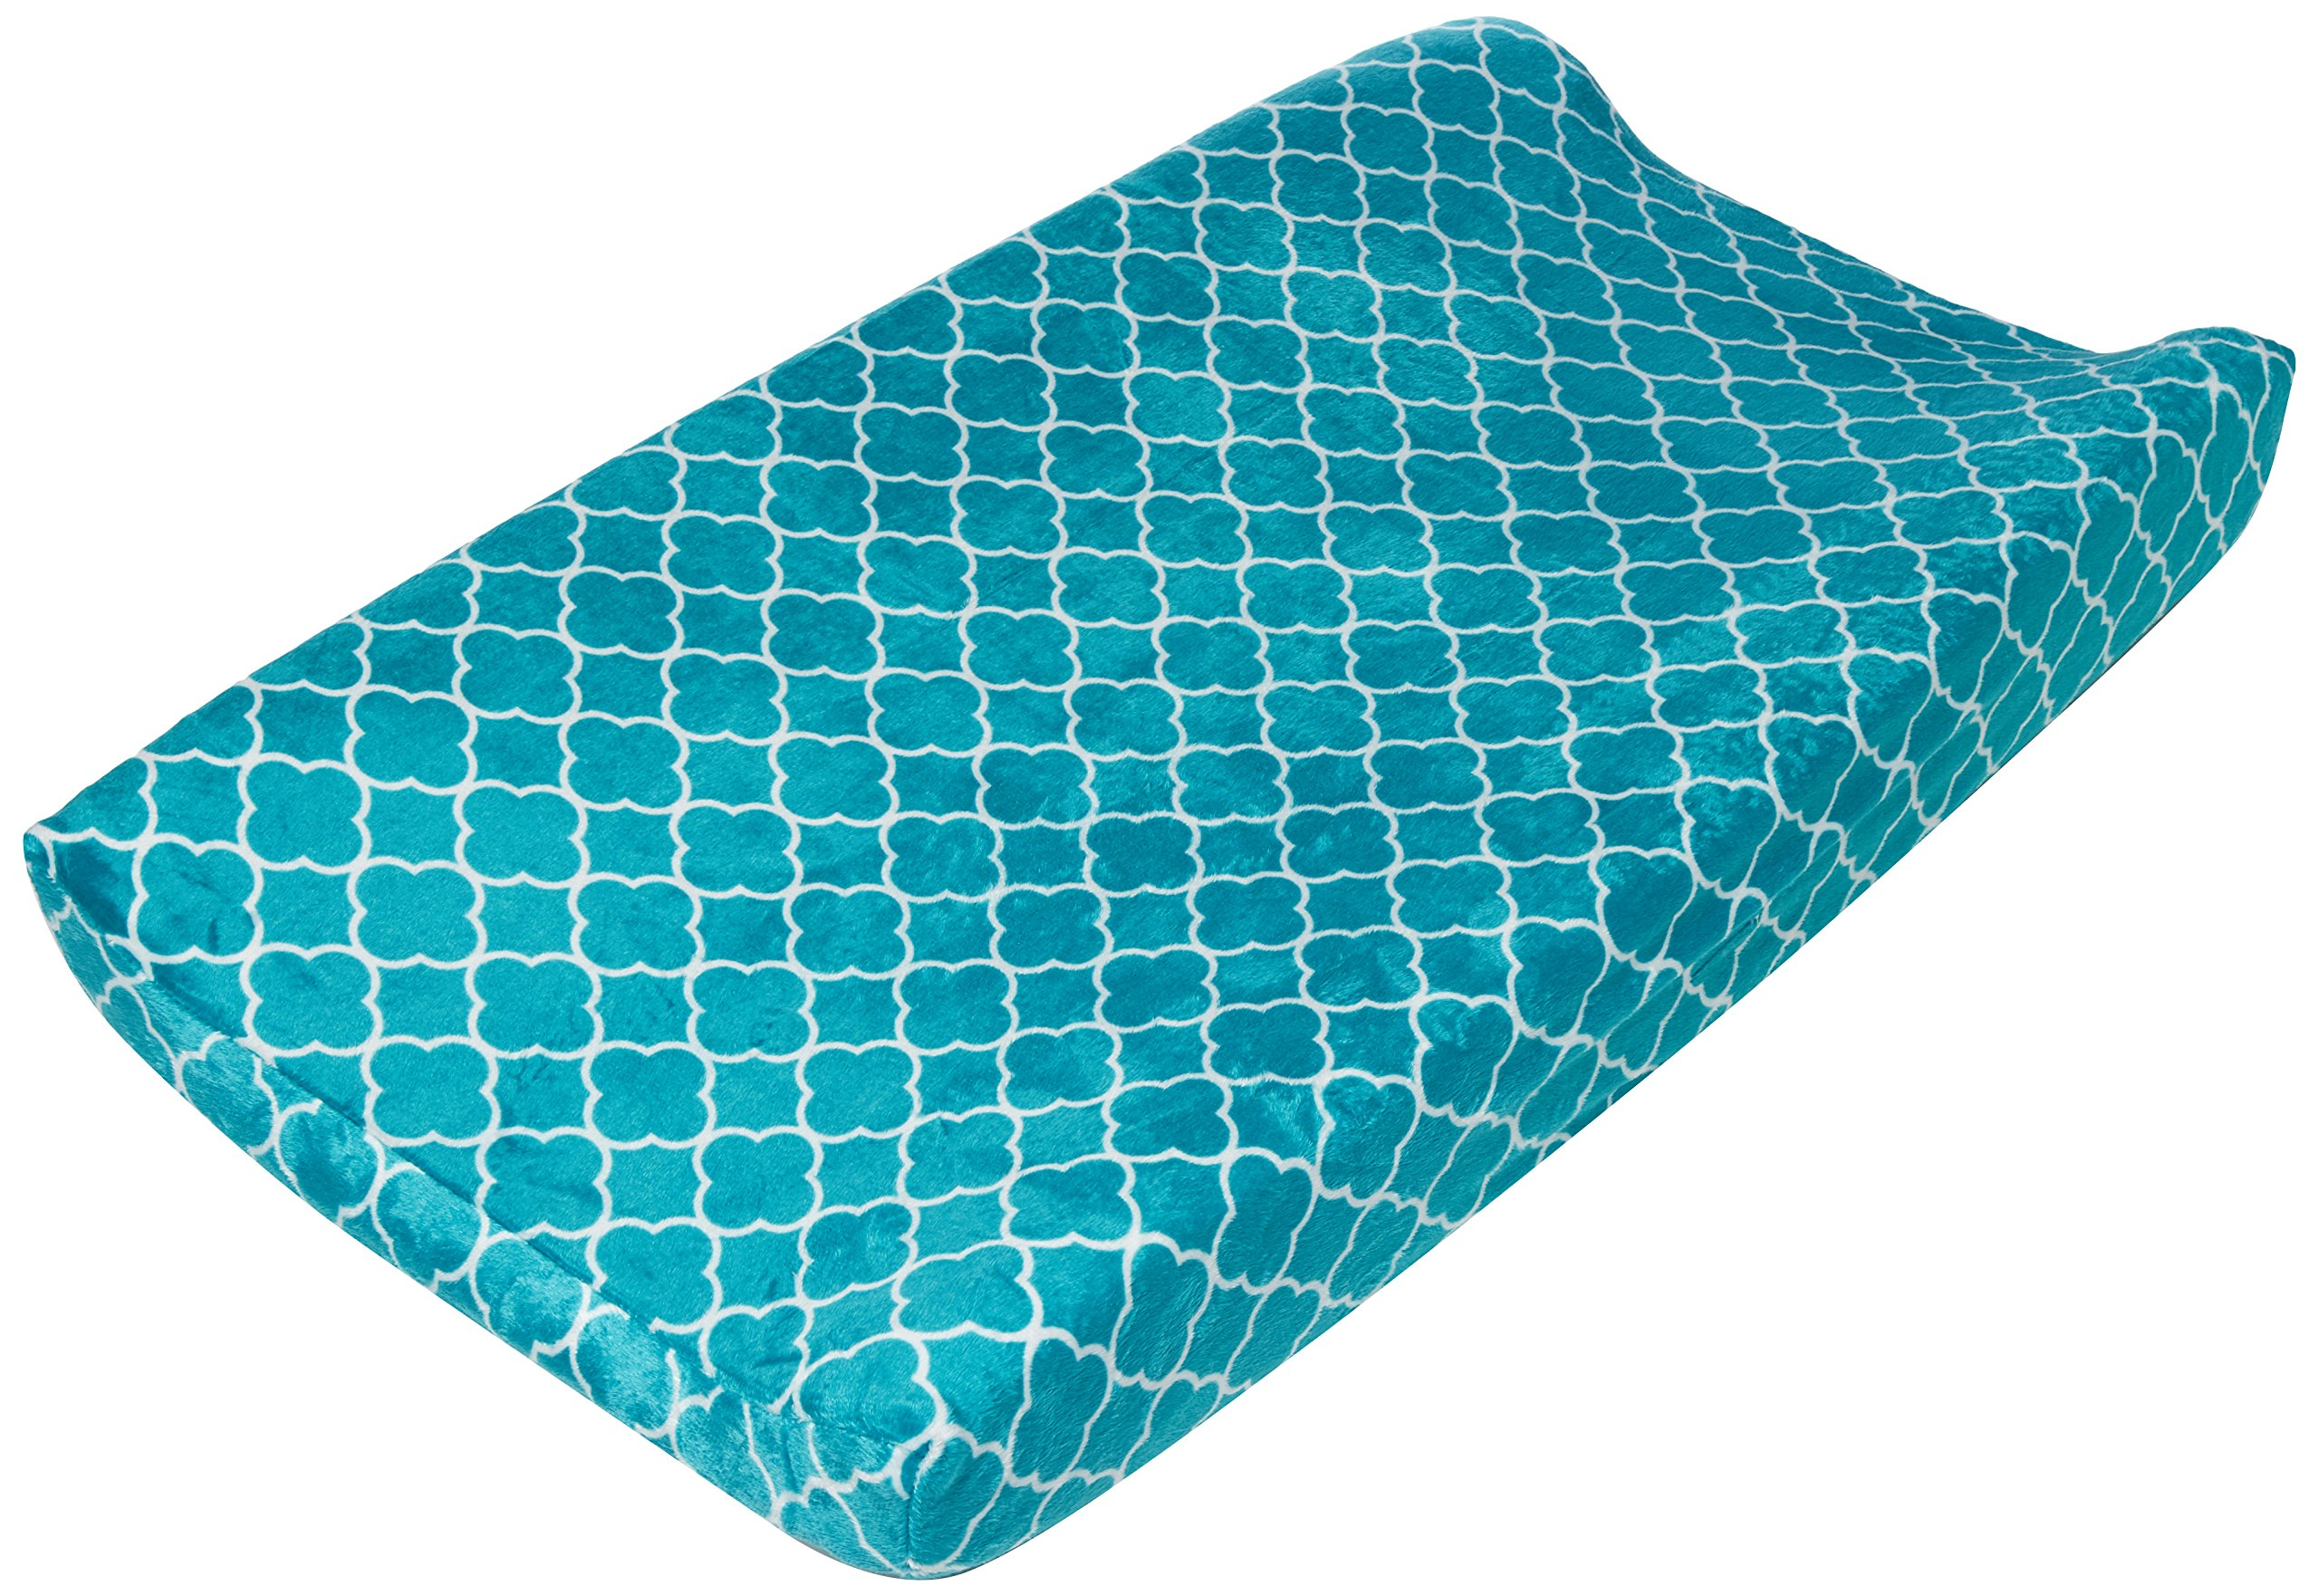 Summer Ultra Plush Changing Pad Cover, Teal Medallion by Summer Infant